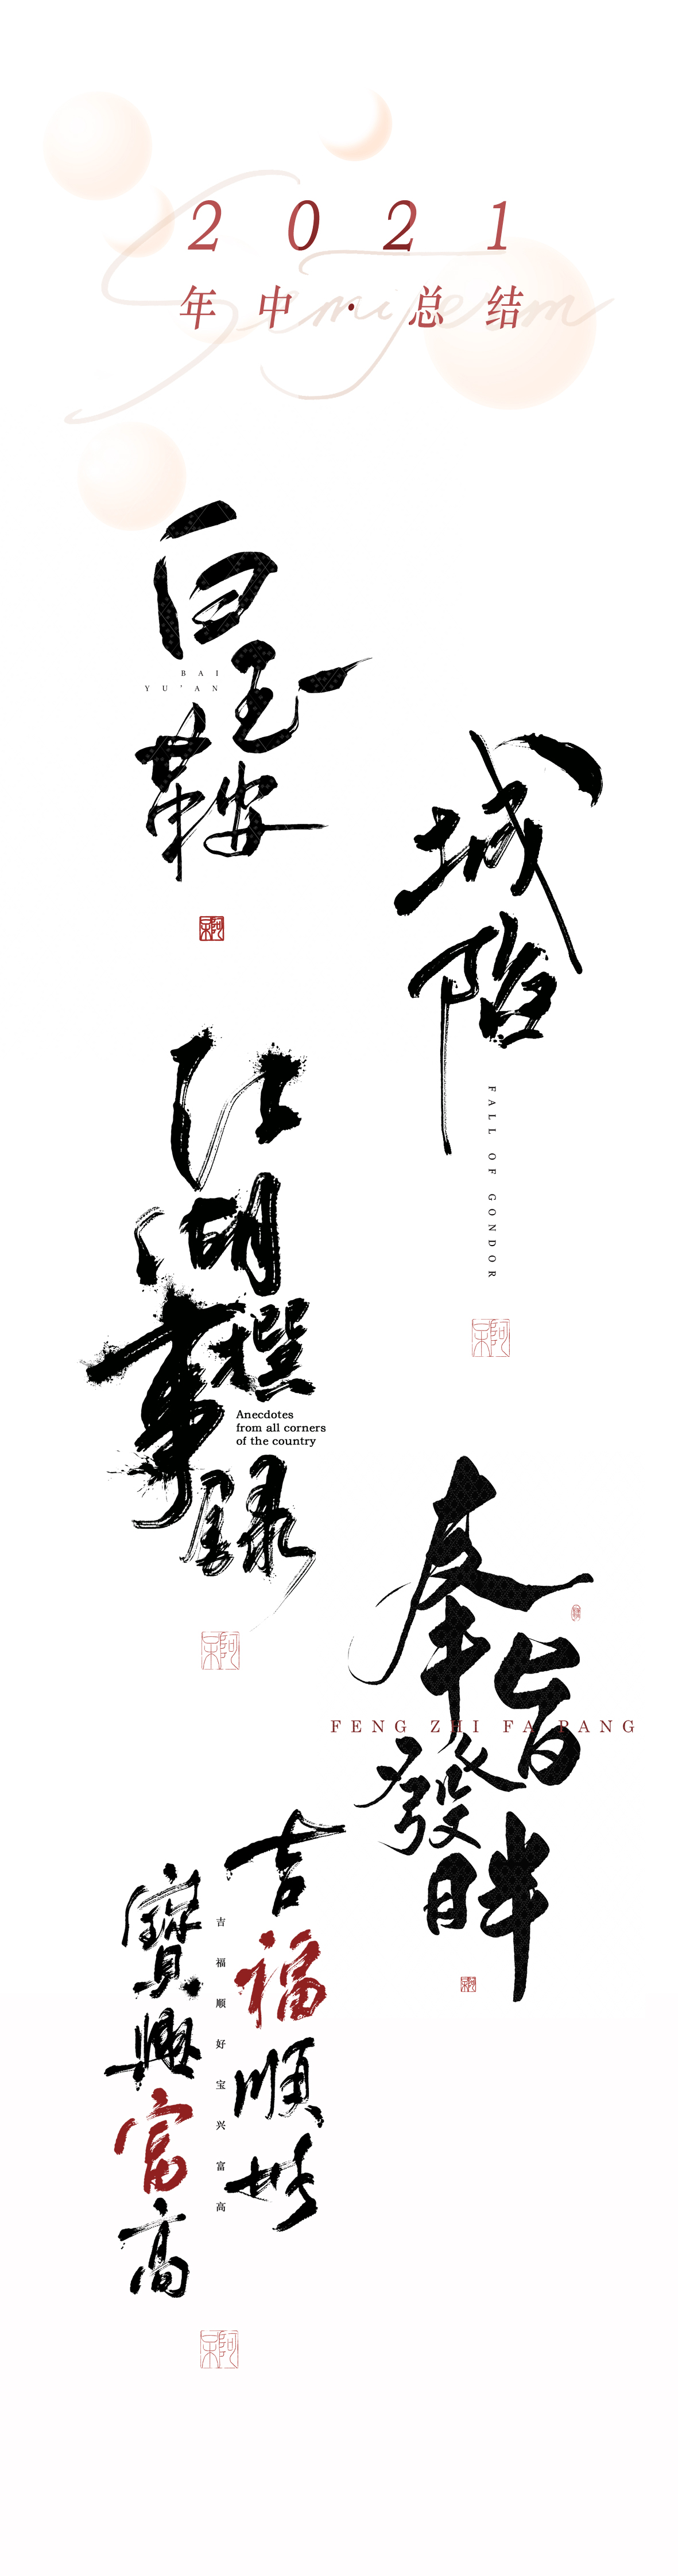 9P Collection of the latest Chinese font design schemes in 2021 #.280